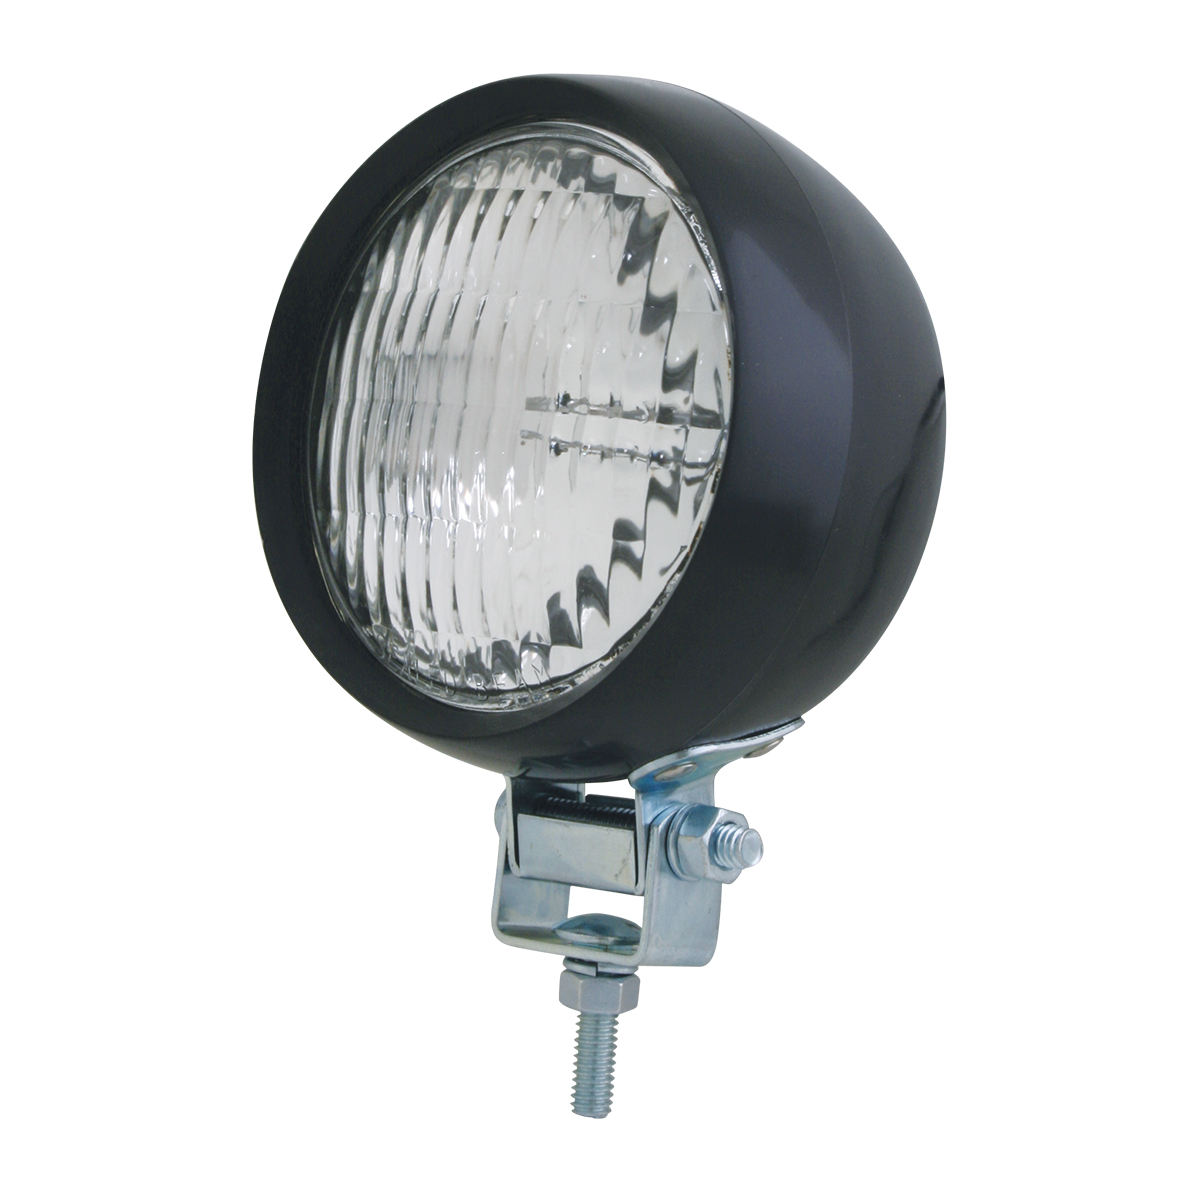 "#80417 4 ½"" Tractor Utility Light"